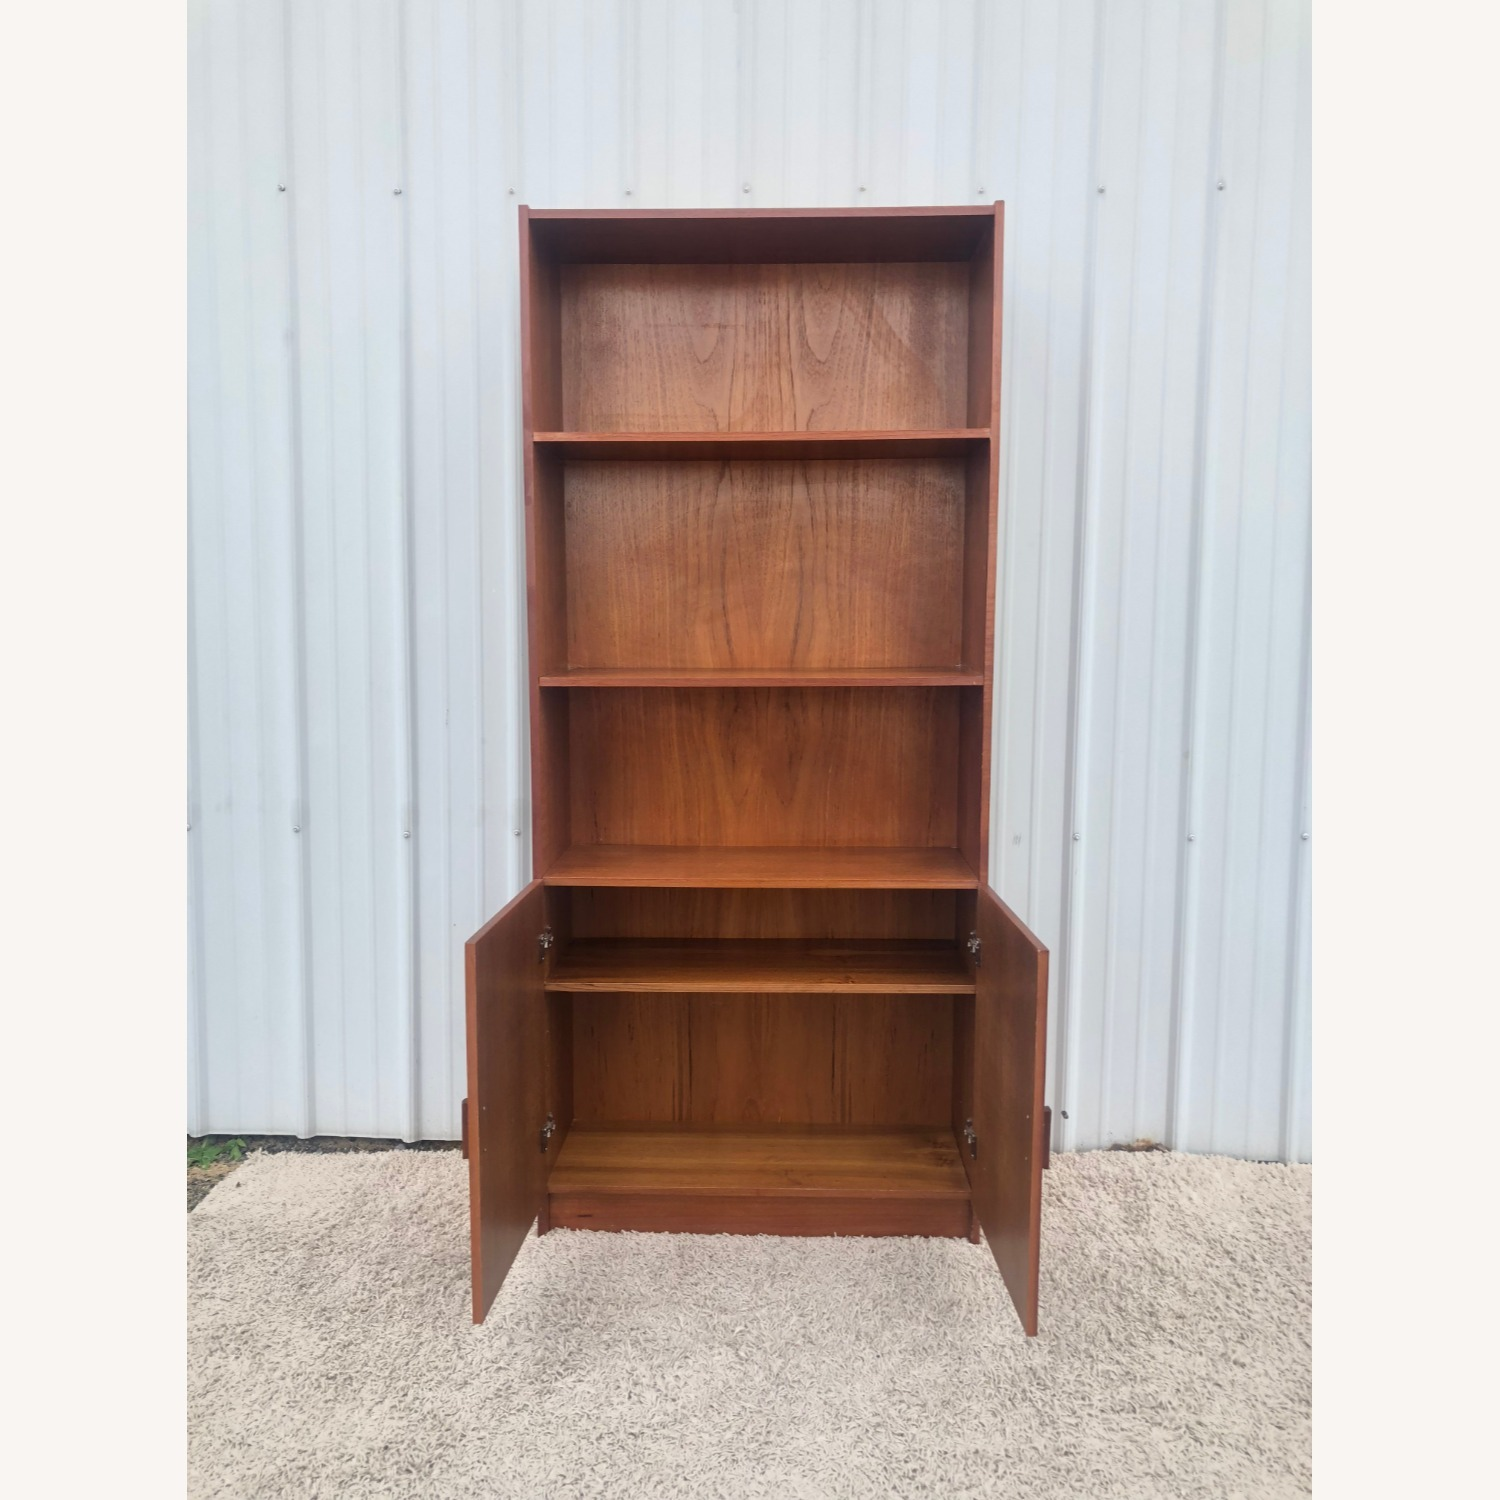 Danish Modern Teak Shelving with Cabinet - image-3